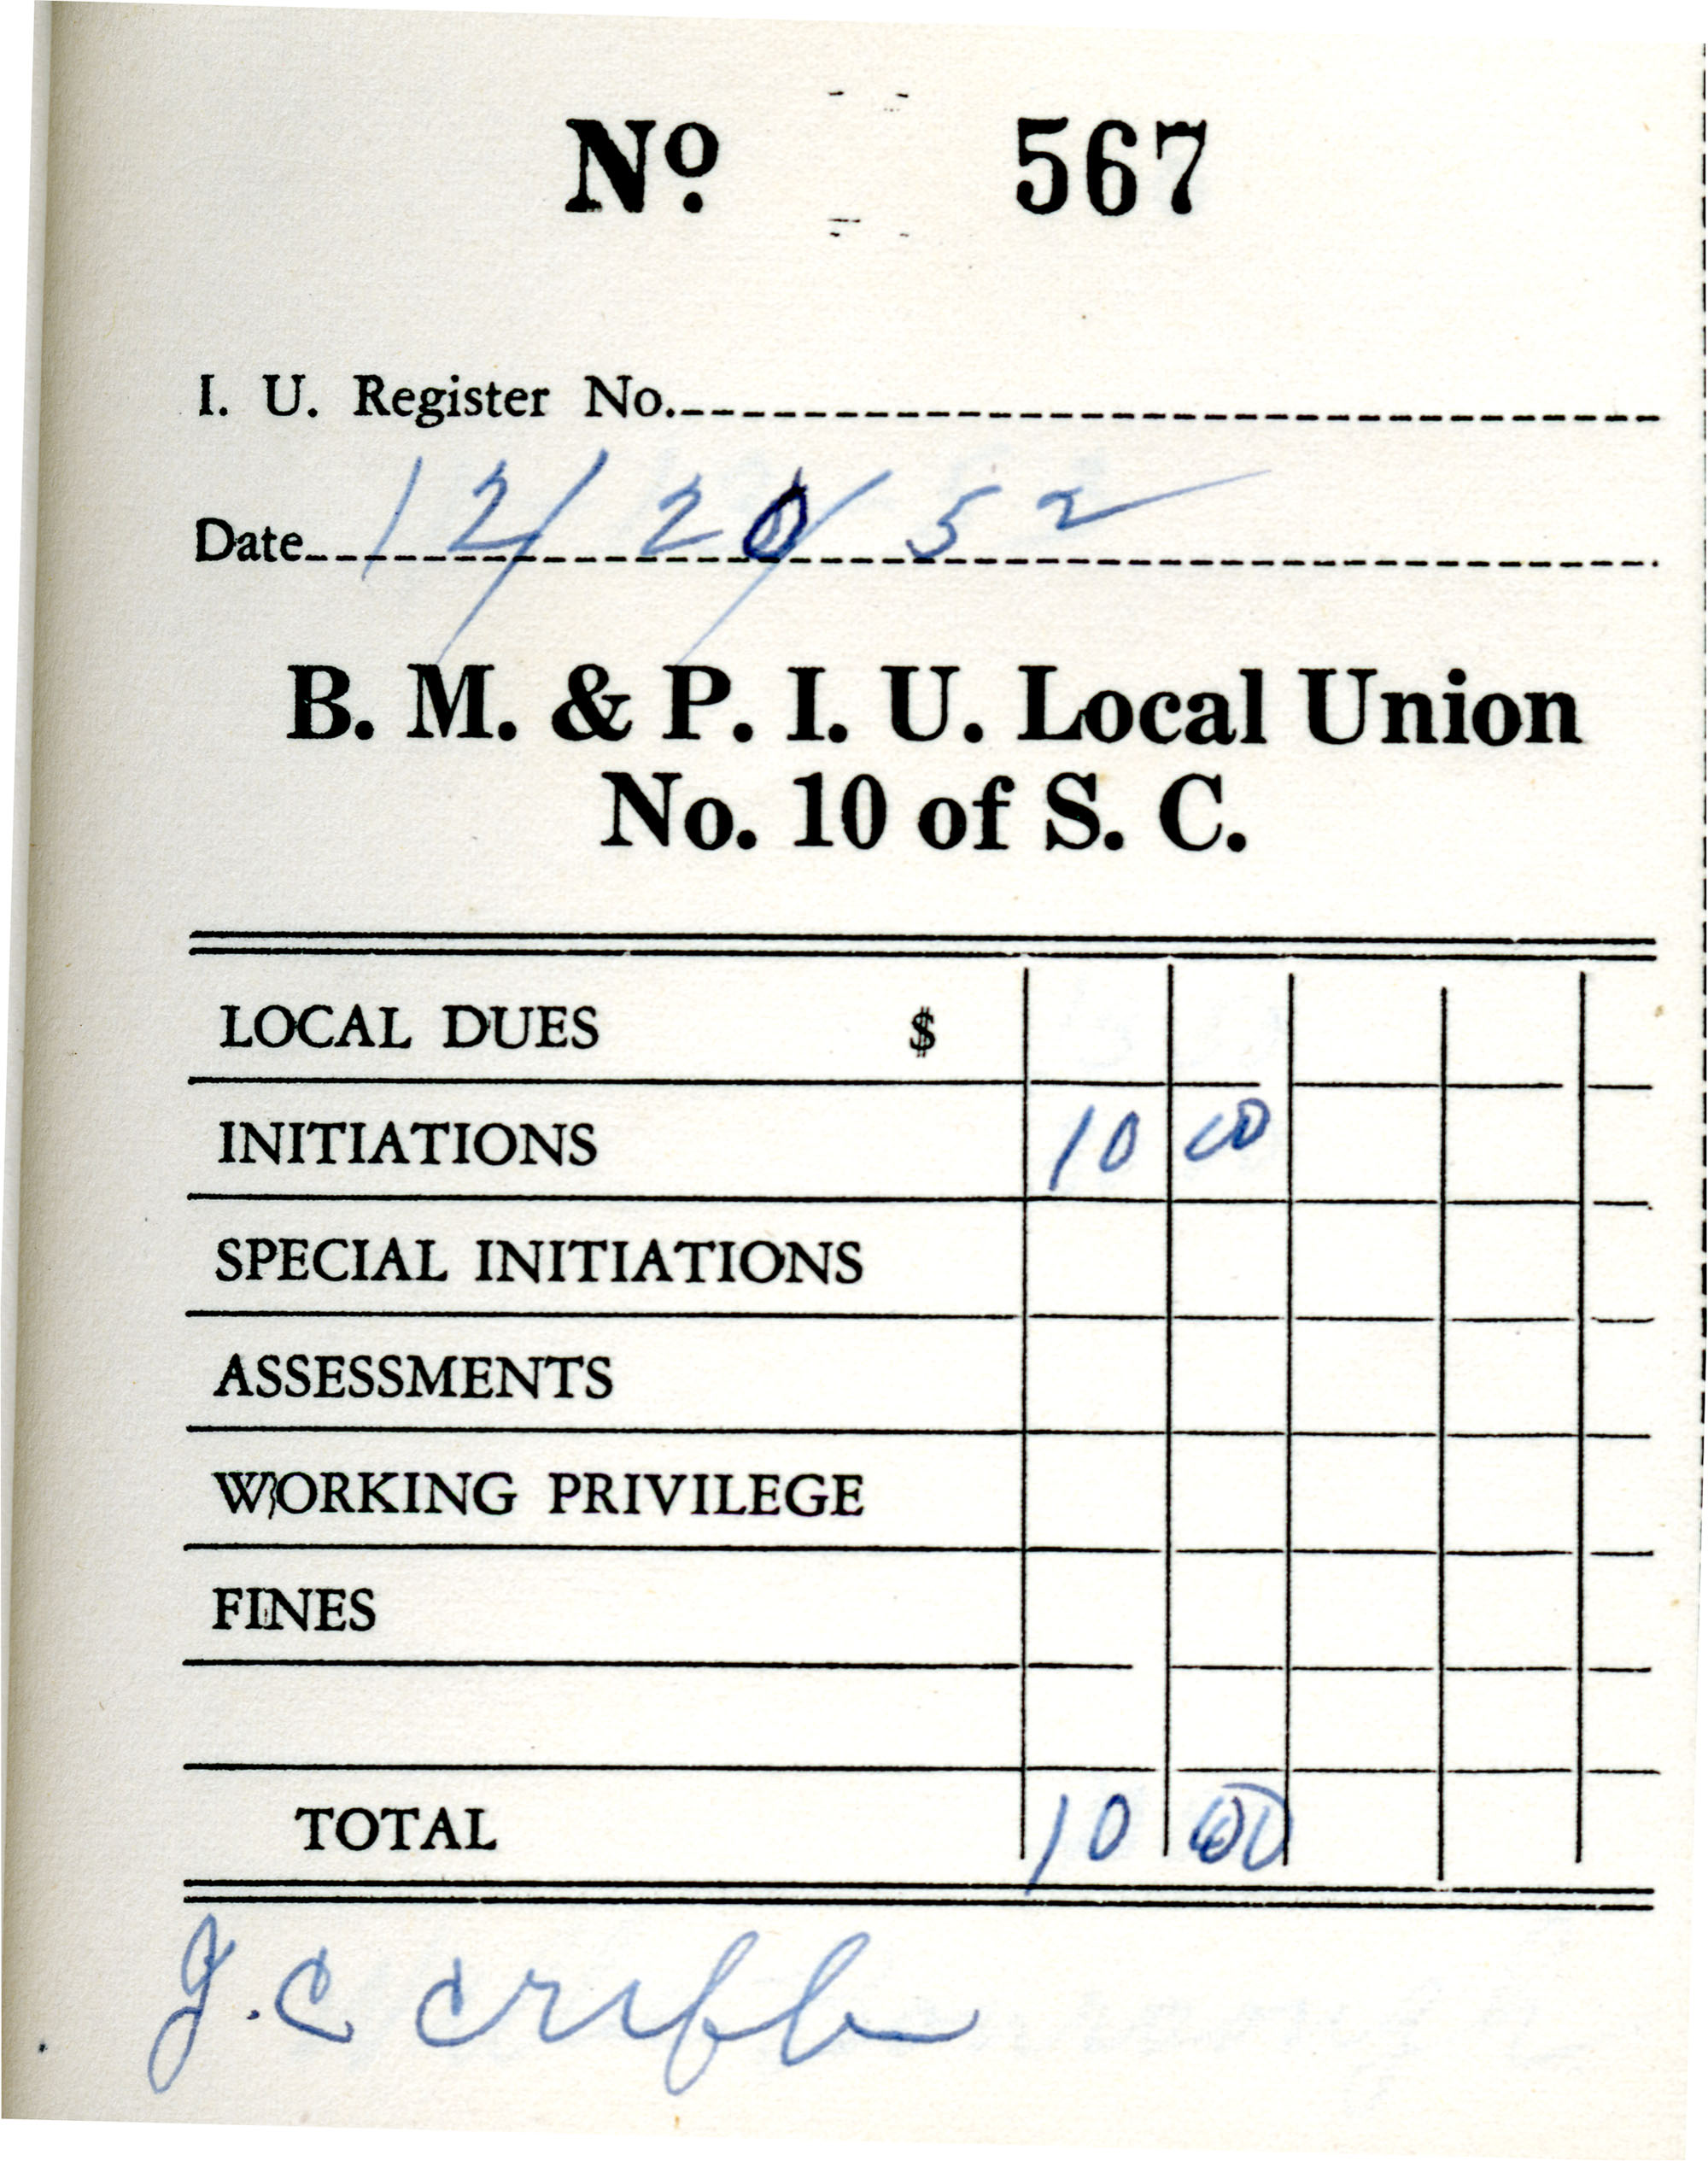 Receipt Book 1, Page 17